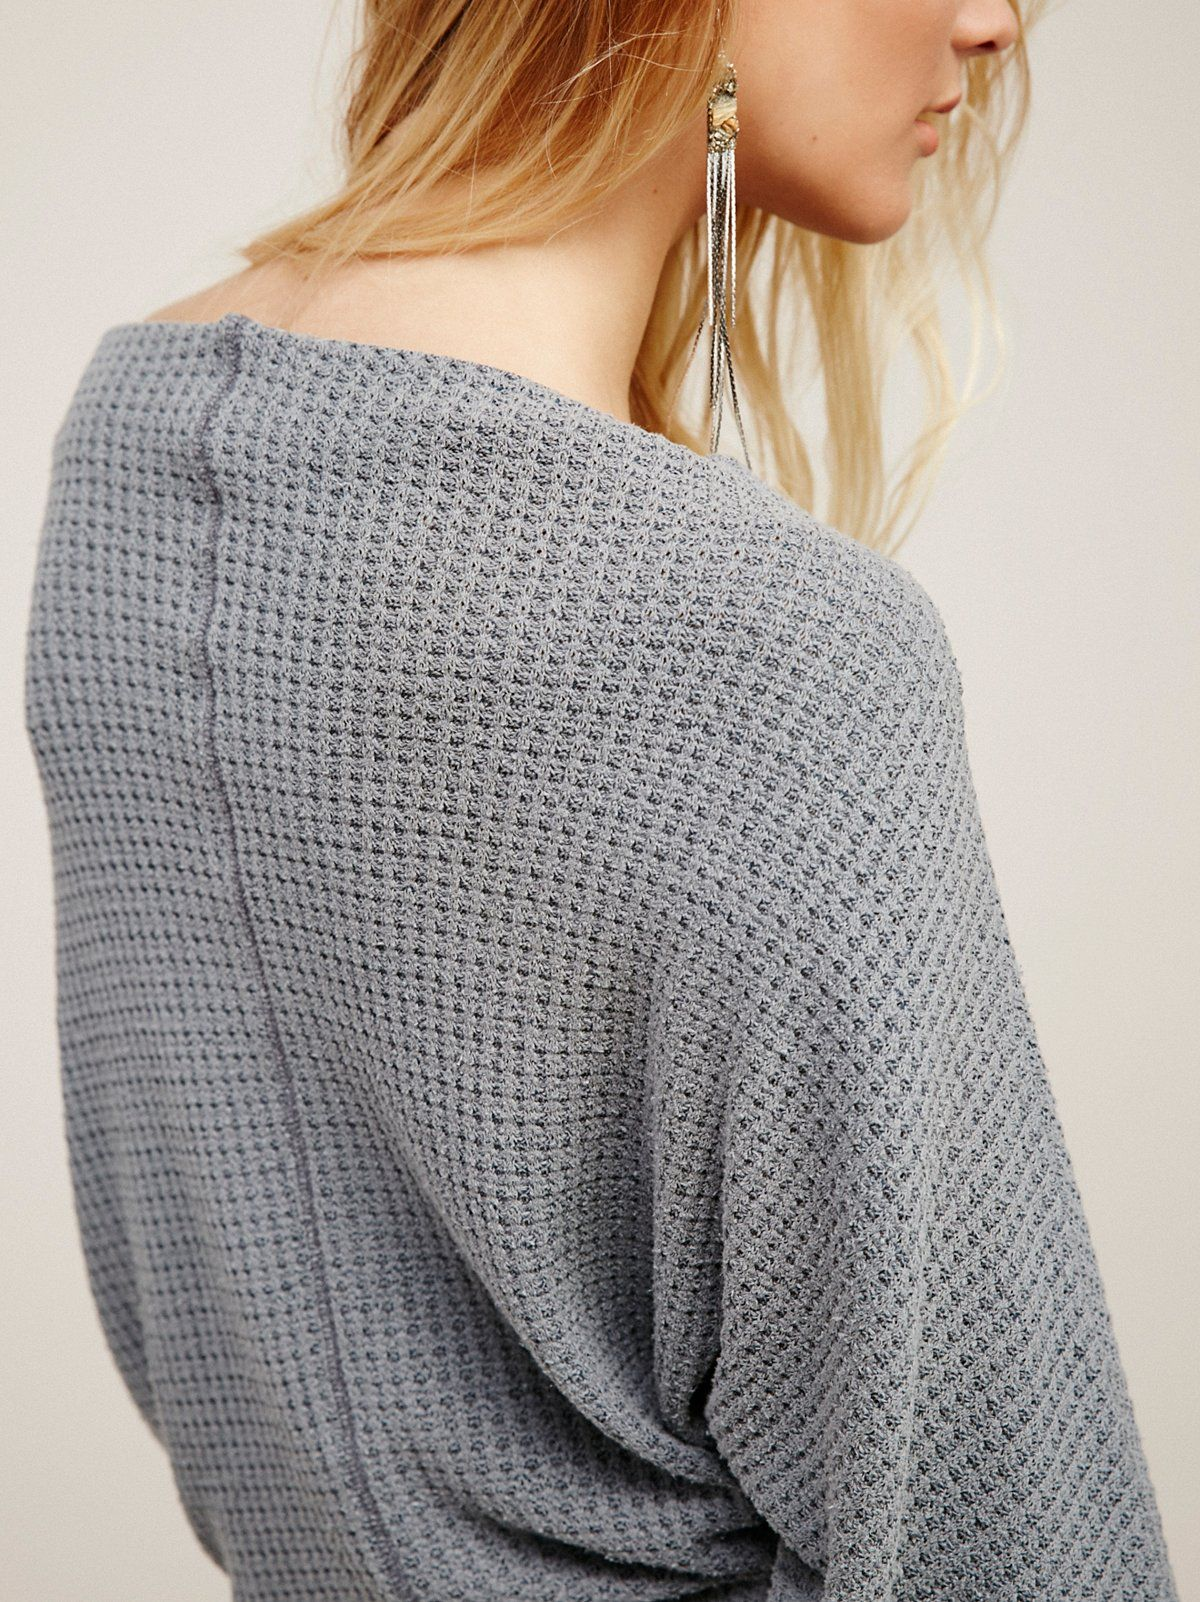 FP Mercury So-Soft Wide-Neck Oversized Drippy Thermal Tee (Grey)